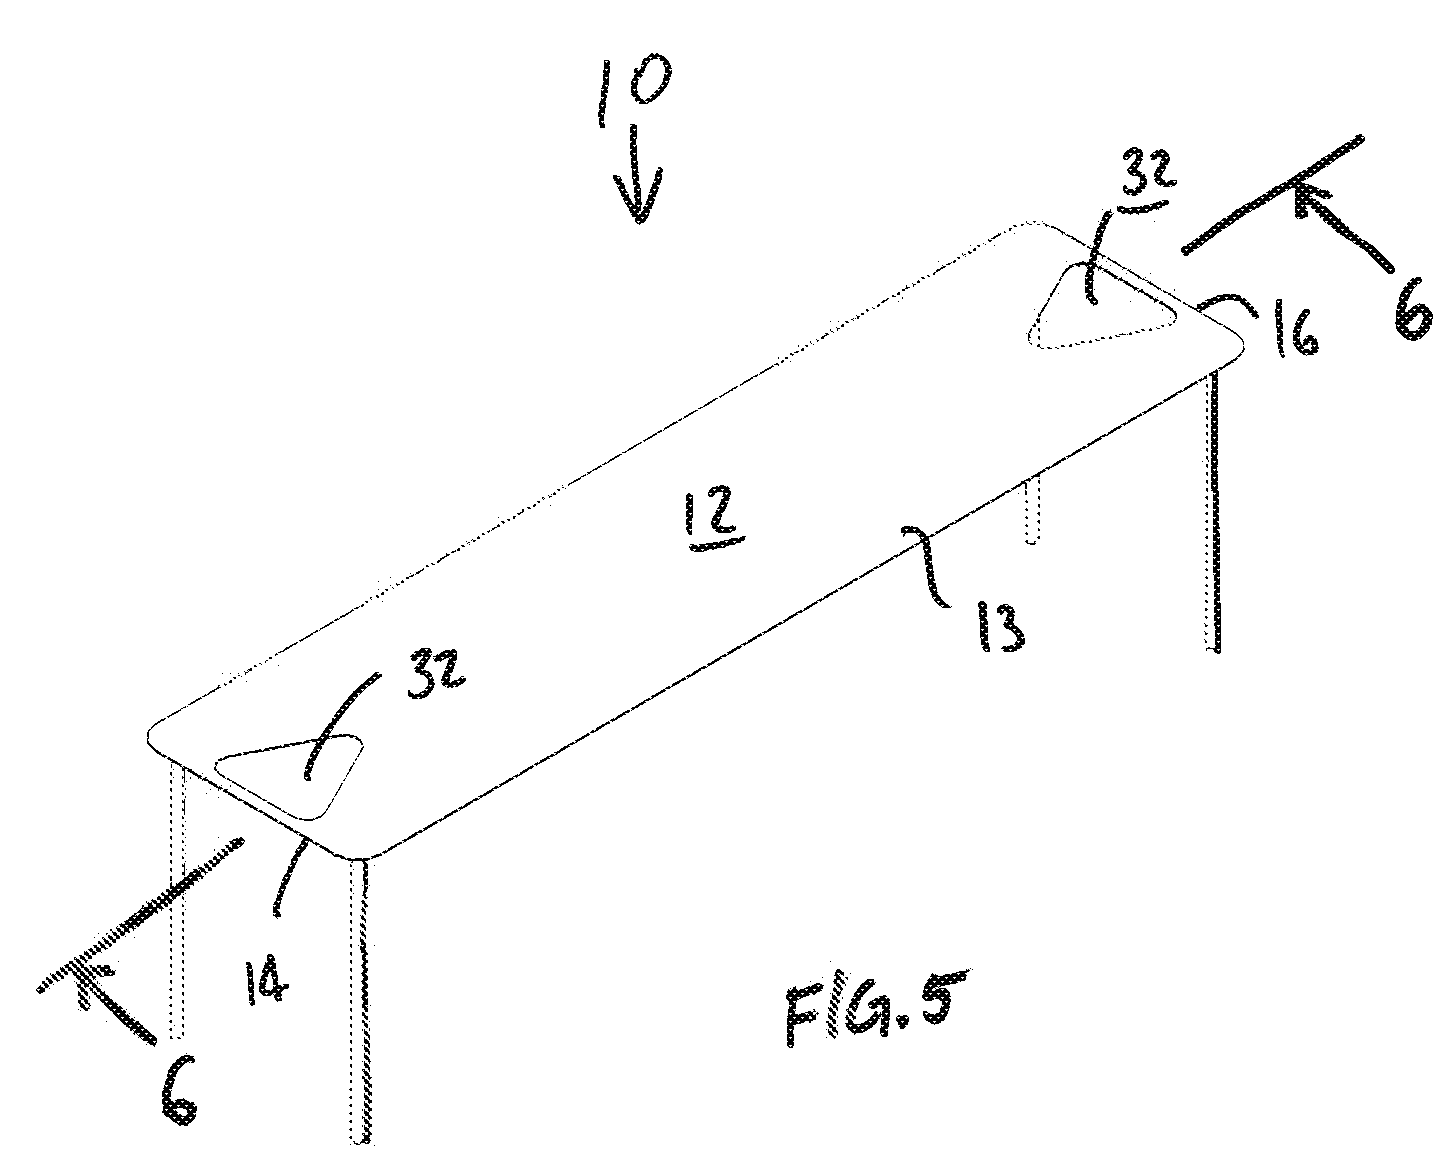 Beer pong table dimensions - Patent Drawing